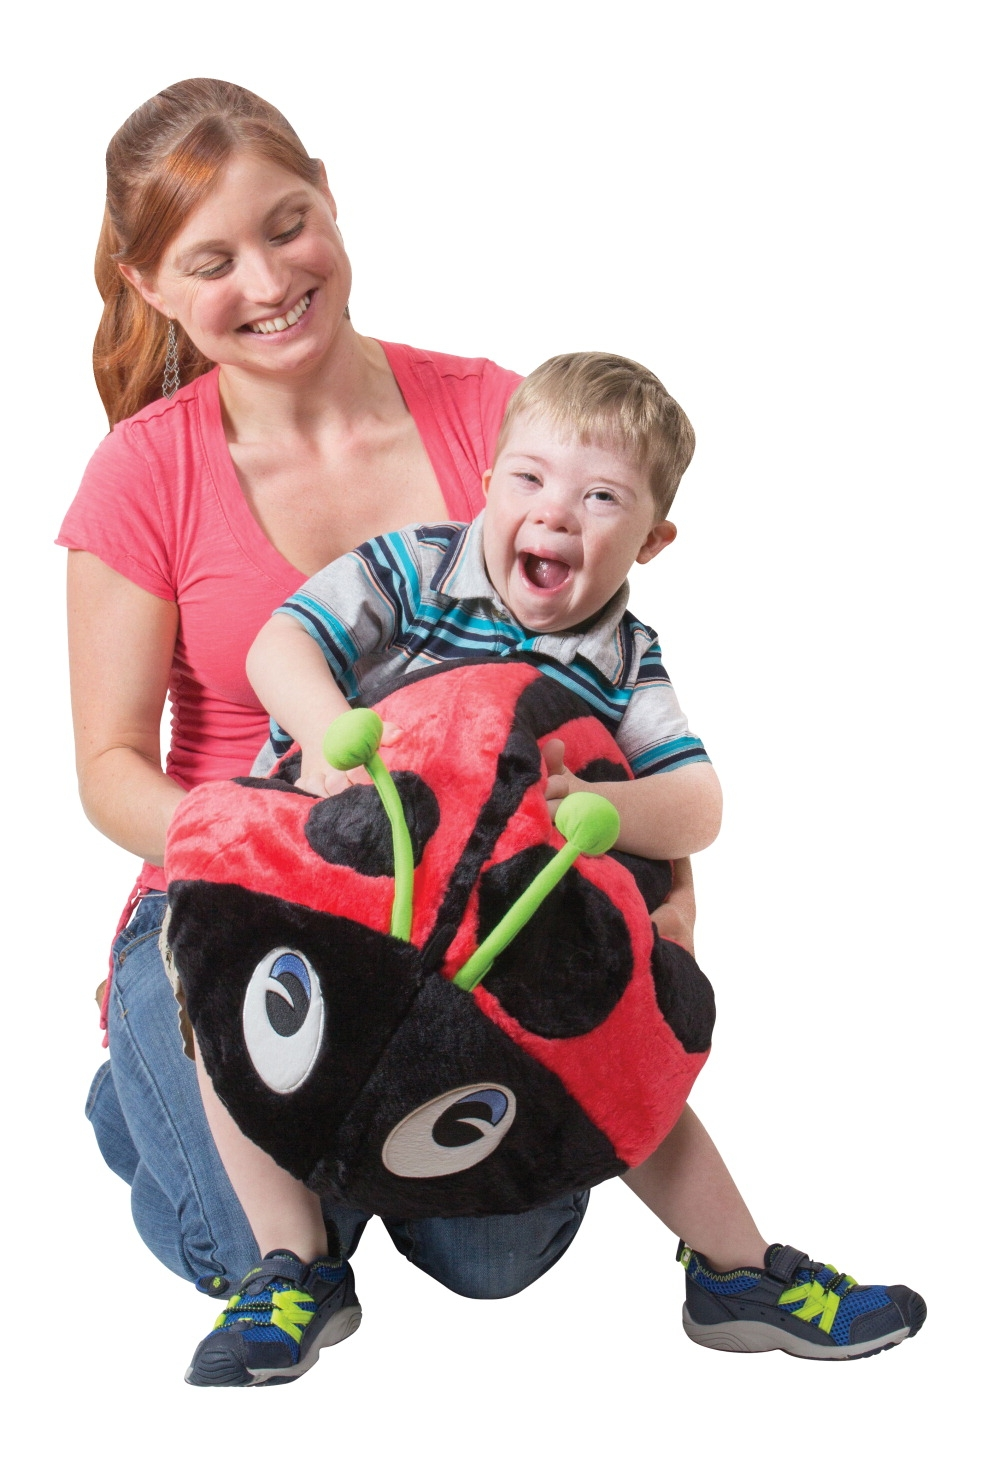 Toys Educational Toys Bug Collecting Kits - 022780 - Sensation Products Vibrating Love Bug; 18 X 10 In 022780